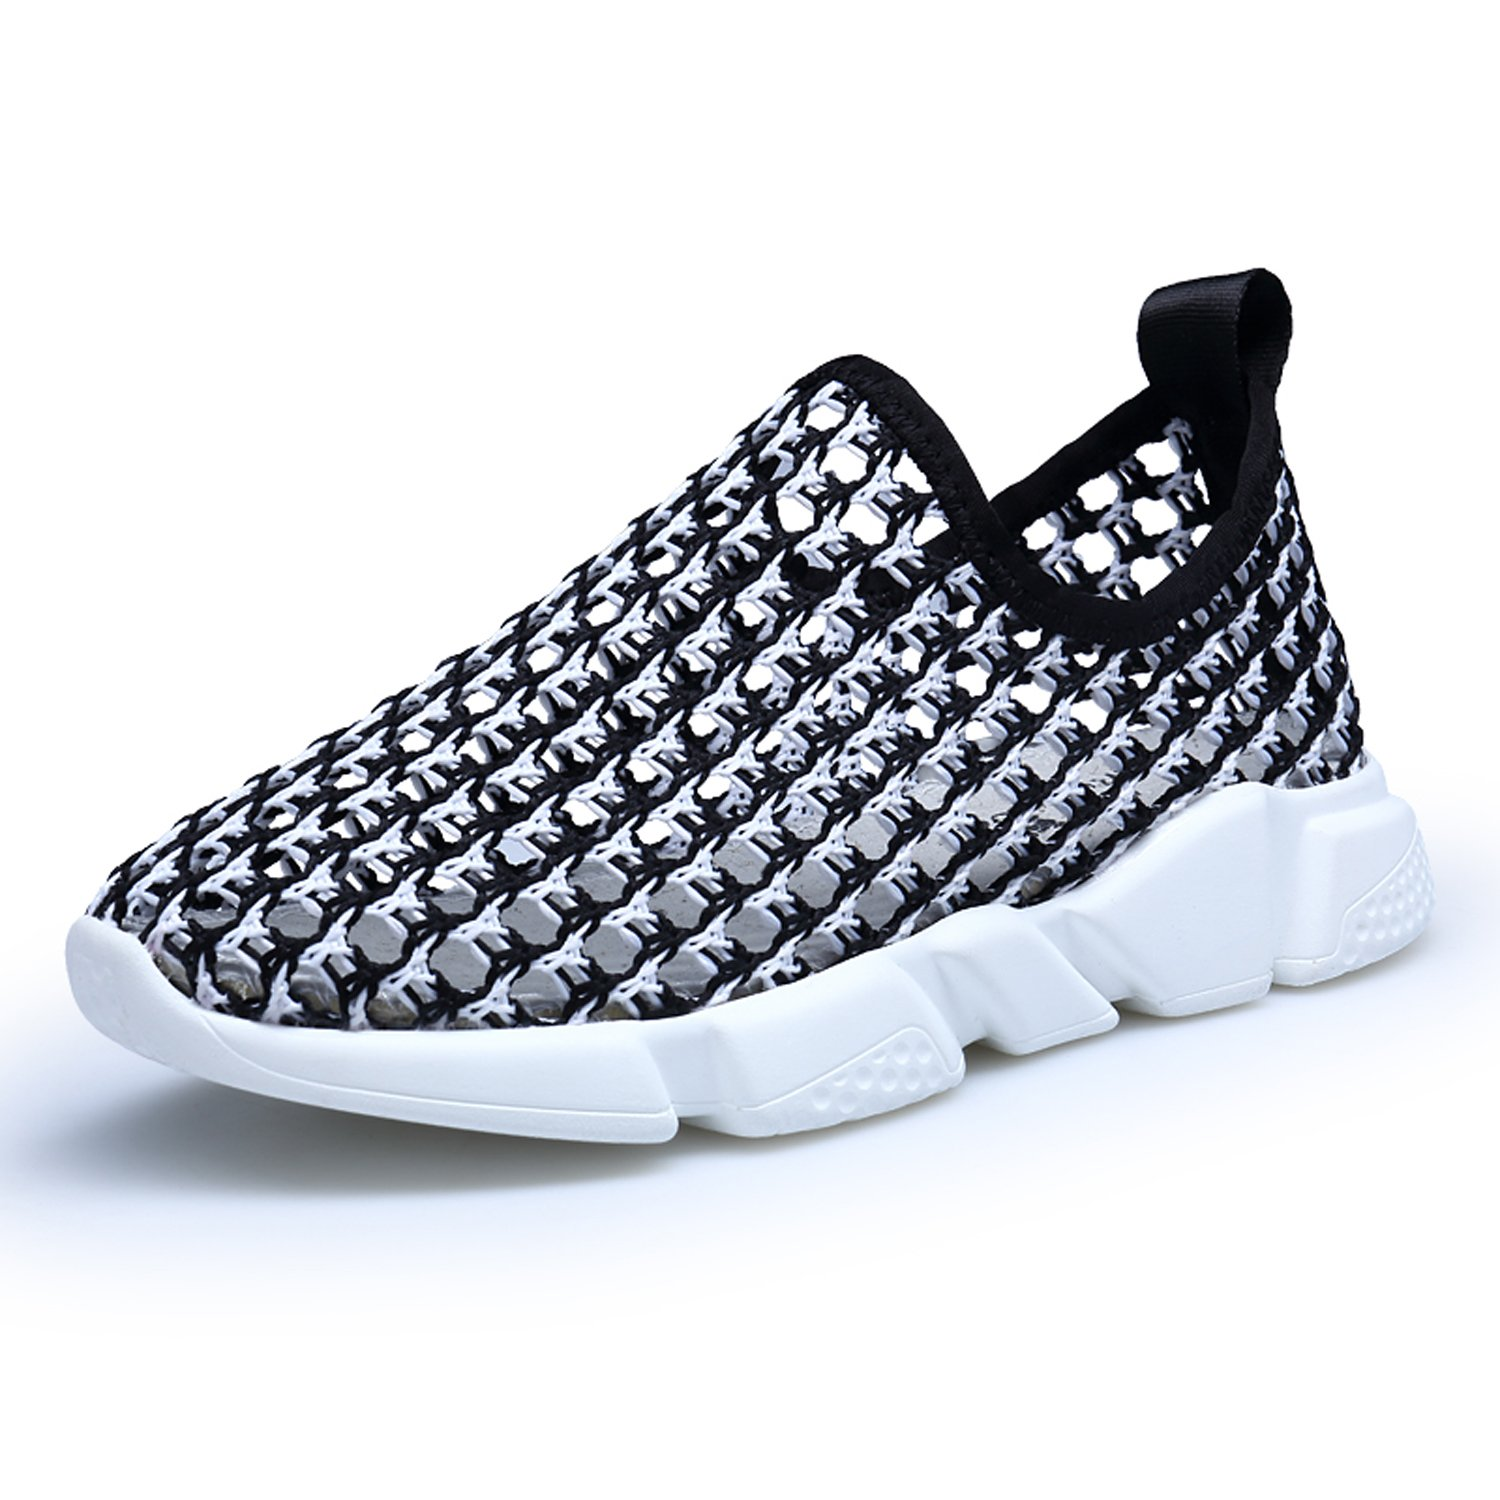 OUYAJI spring and summer hollow breathable mesh children's shoes parent-child shoes casual shoes sports shoes running shoes BLACK 28